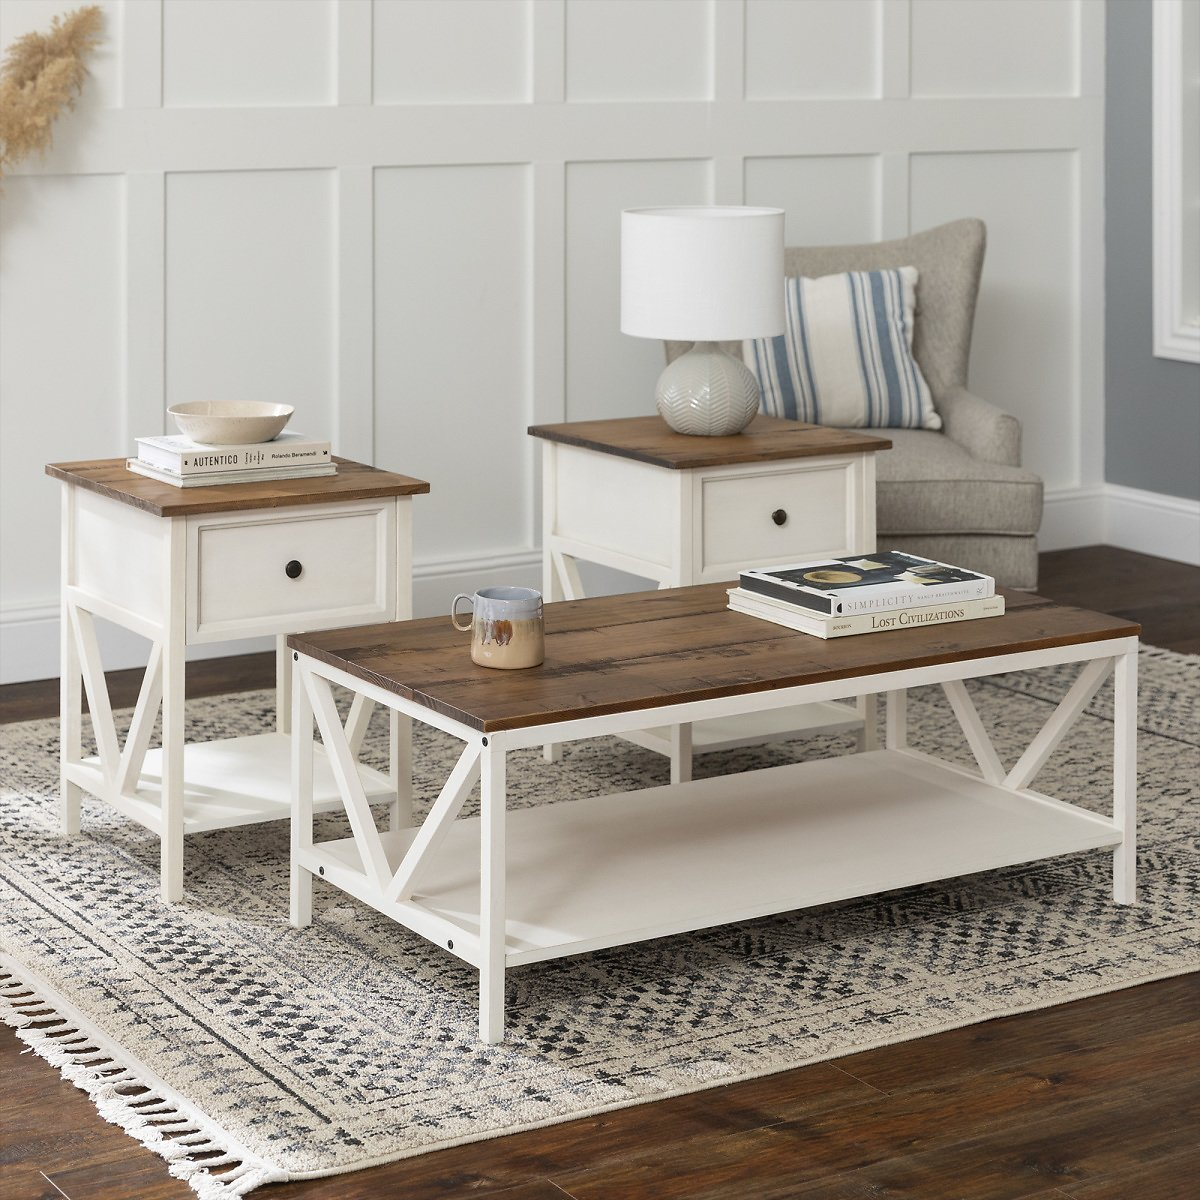 Modern Farmhouse Accent Table Set, Distressed White